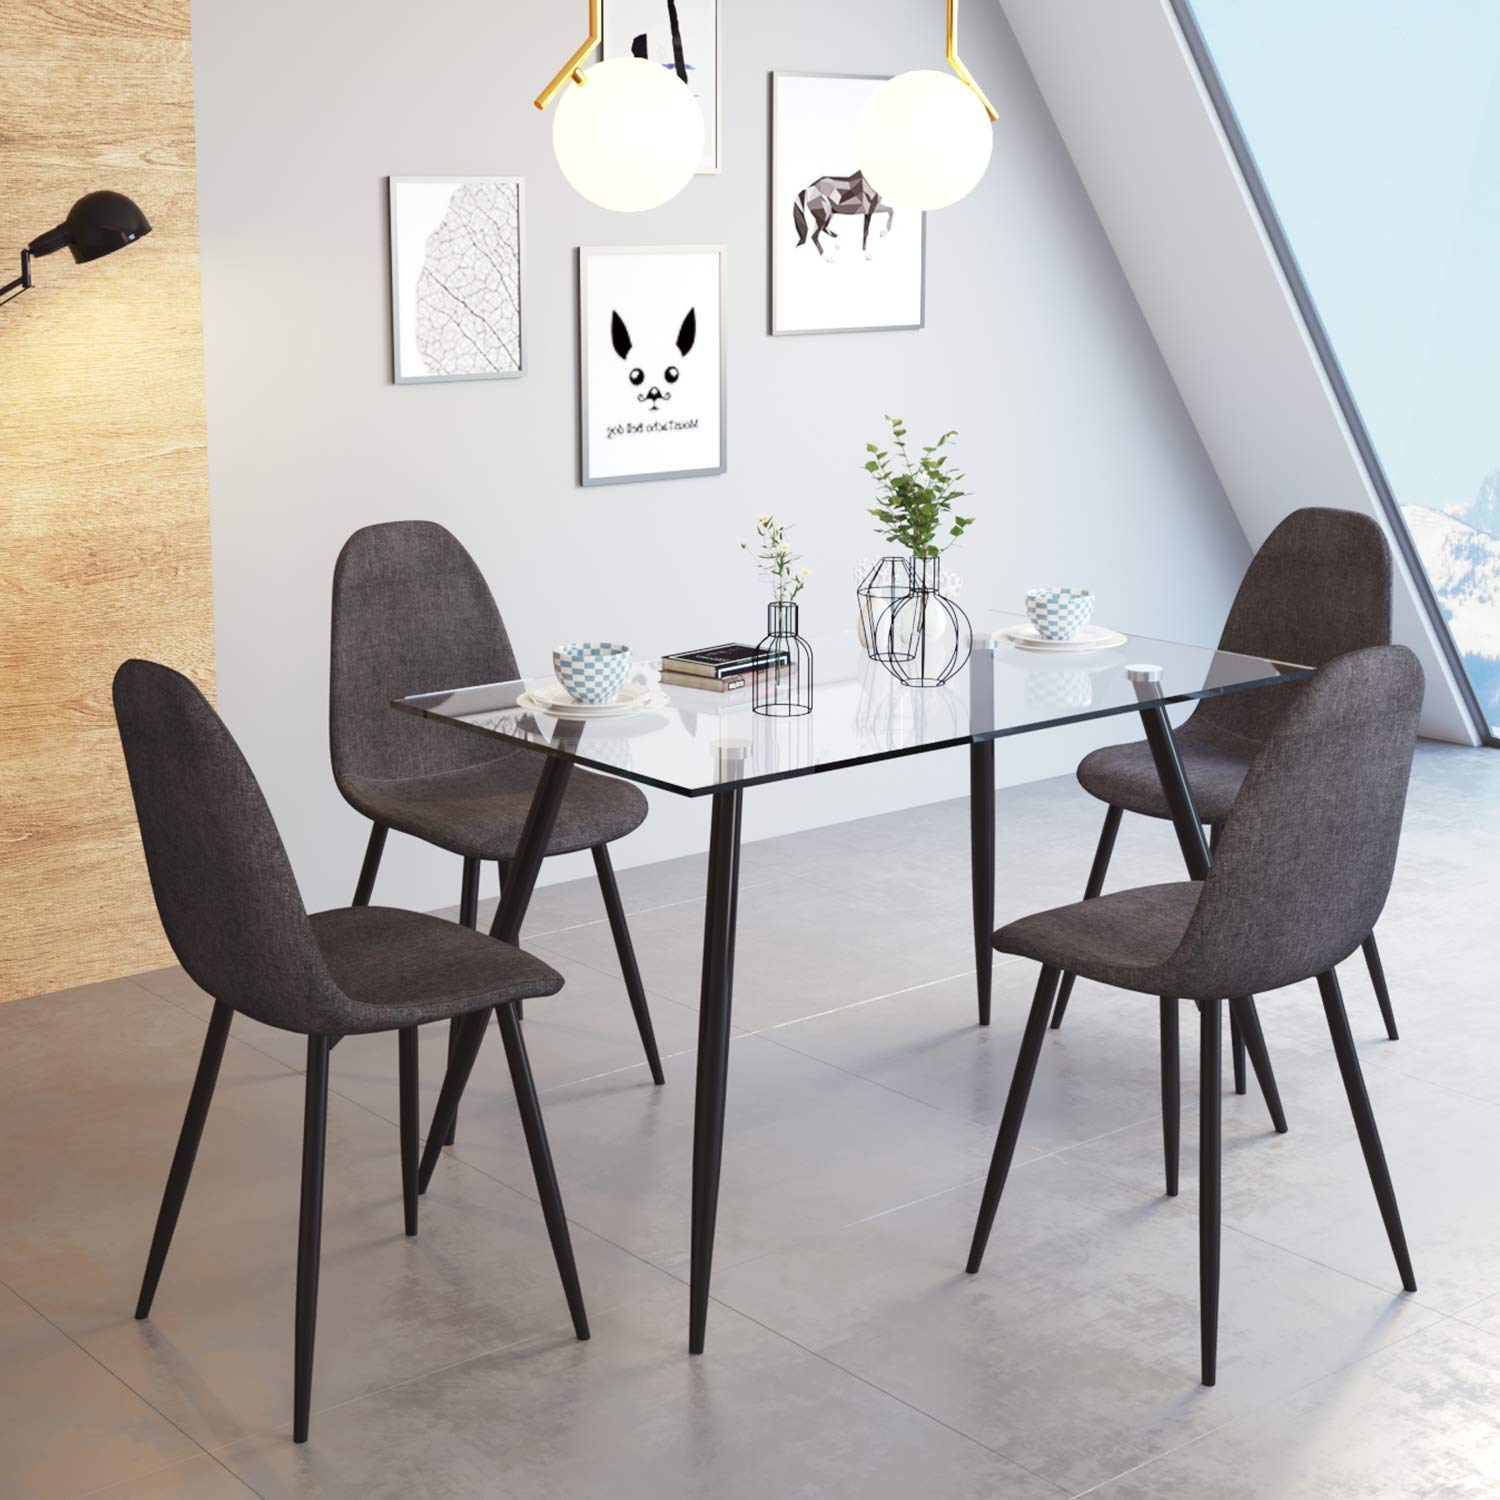 Euco Gray Dining Chair Set Of 4 Retro Dining Chairs With Fabric Upholstered Padded Seat Metal Black Leg Kitchen Dining Room Sitting Room Office Cafe Furniture Set